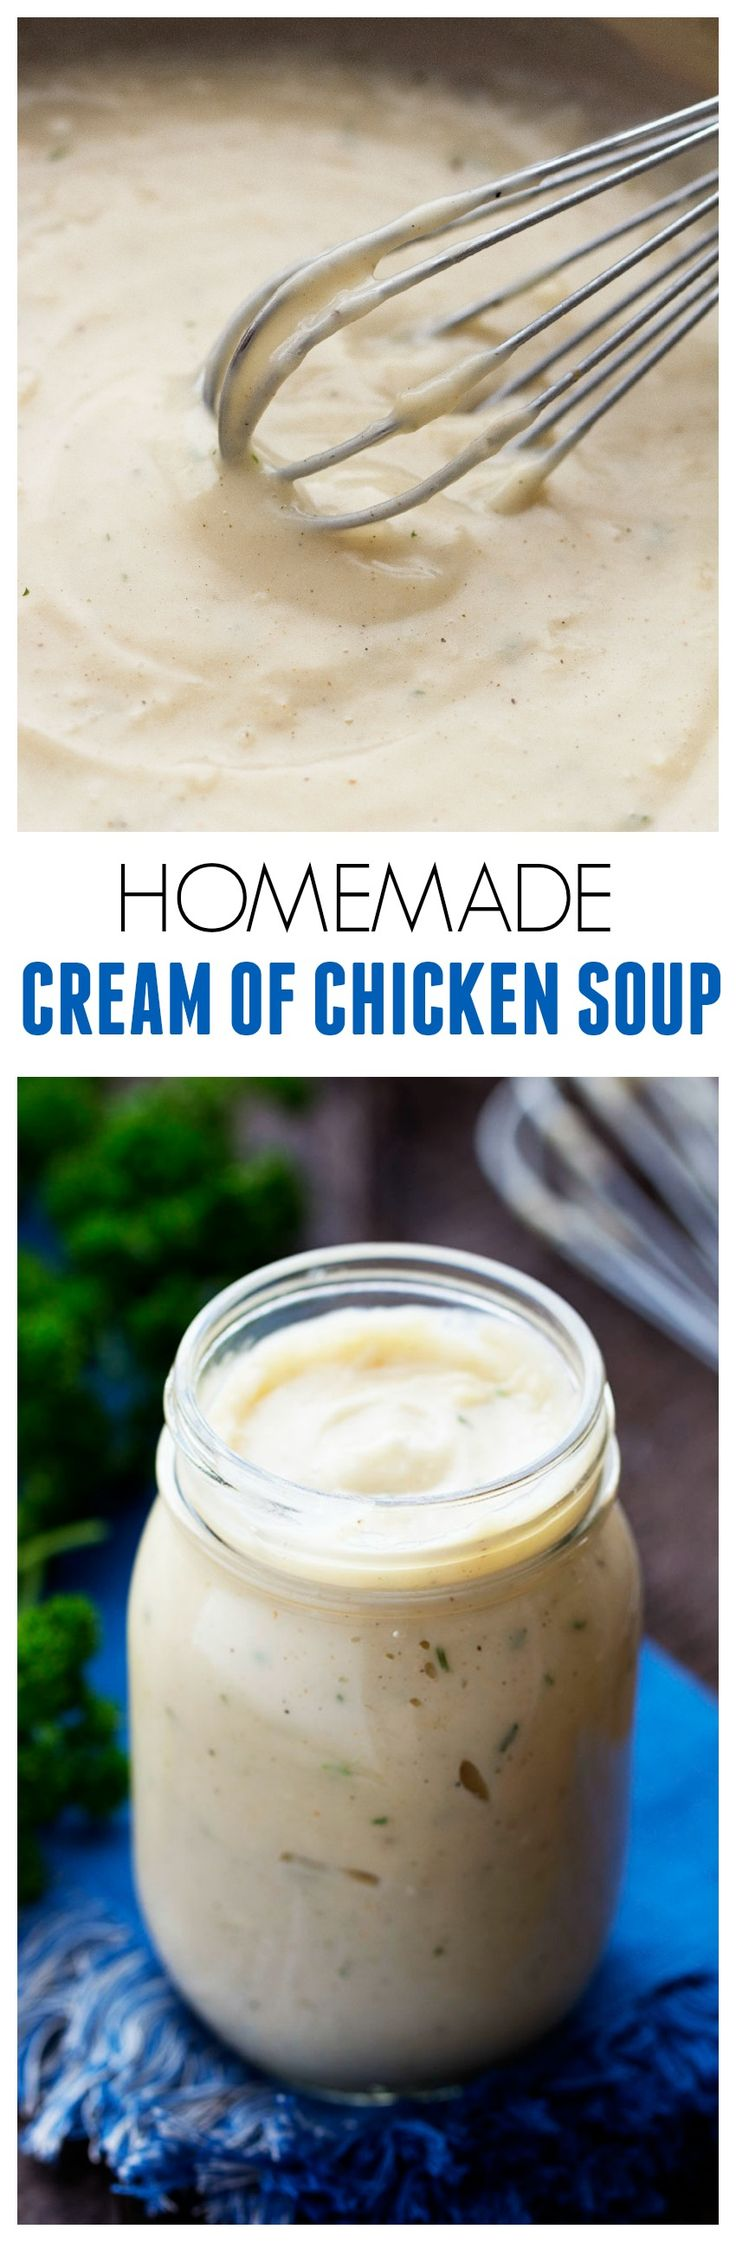 A delicious homemade version of condensed cream of chicken soup! It takes only minutes to whisk up and is such a better alternative!